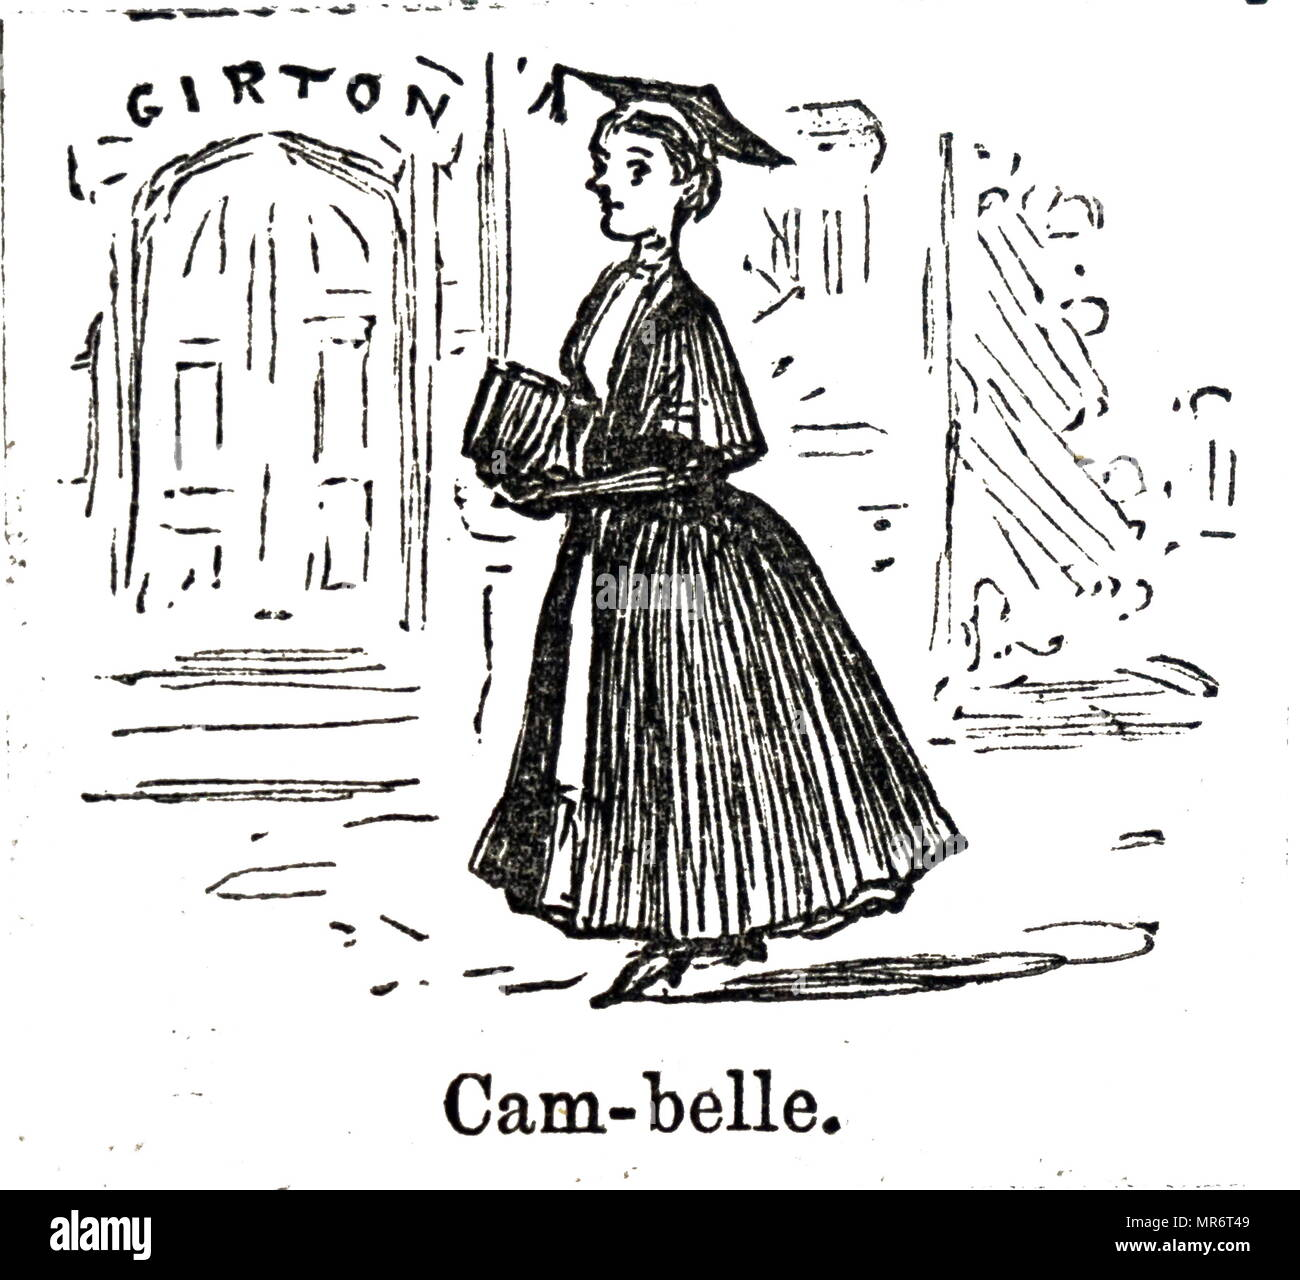 Illustration depicting a Cambridge Belle (Cam-belle) with Girton College in the background. Dated 19th century - Stock Image